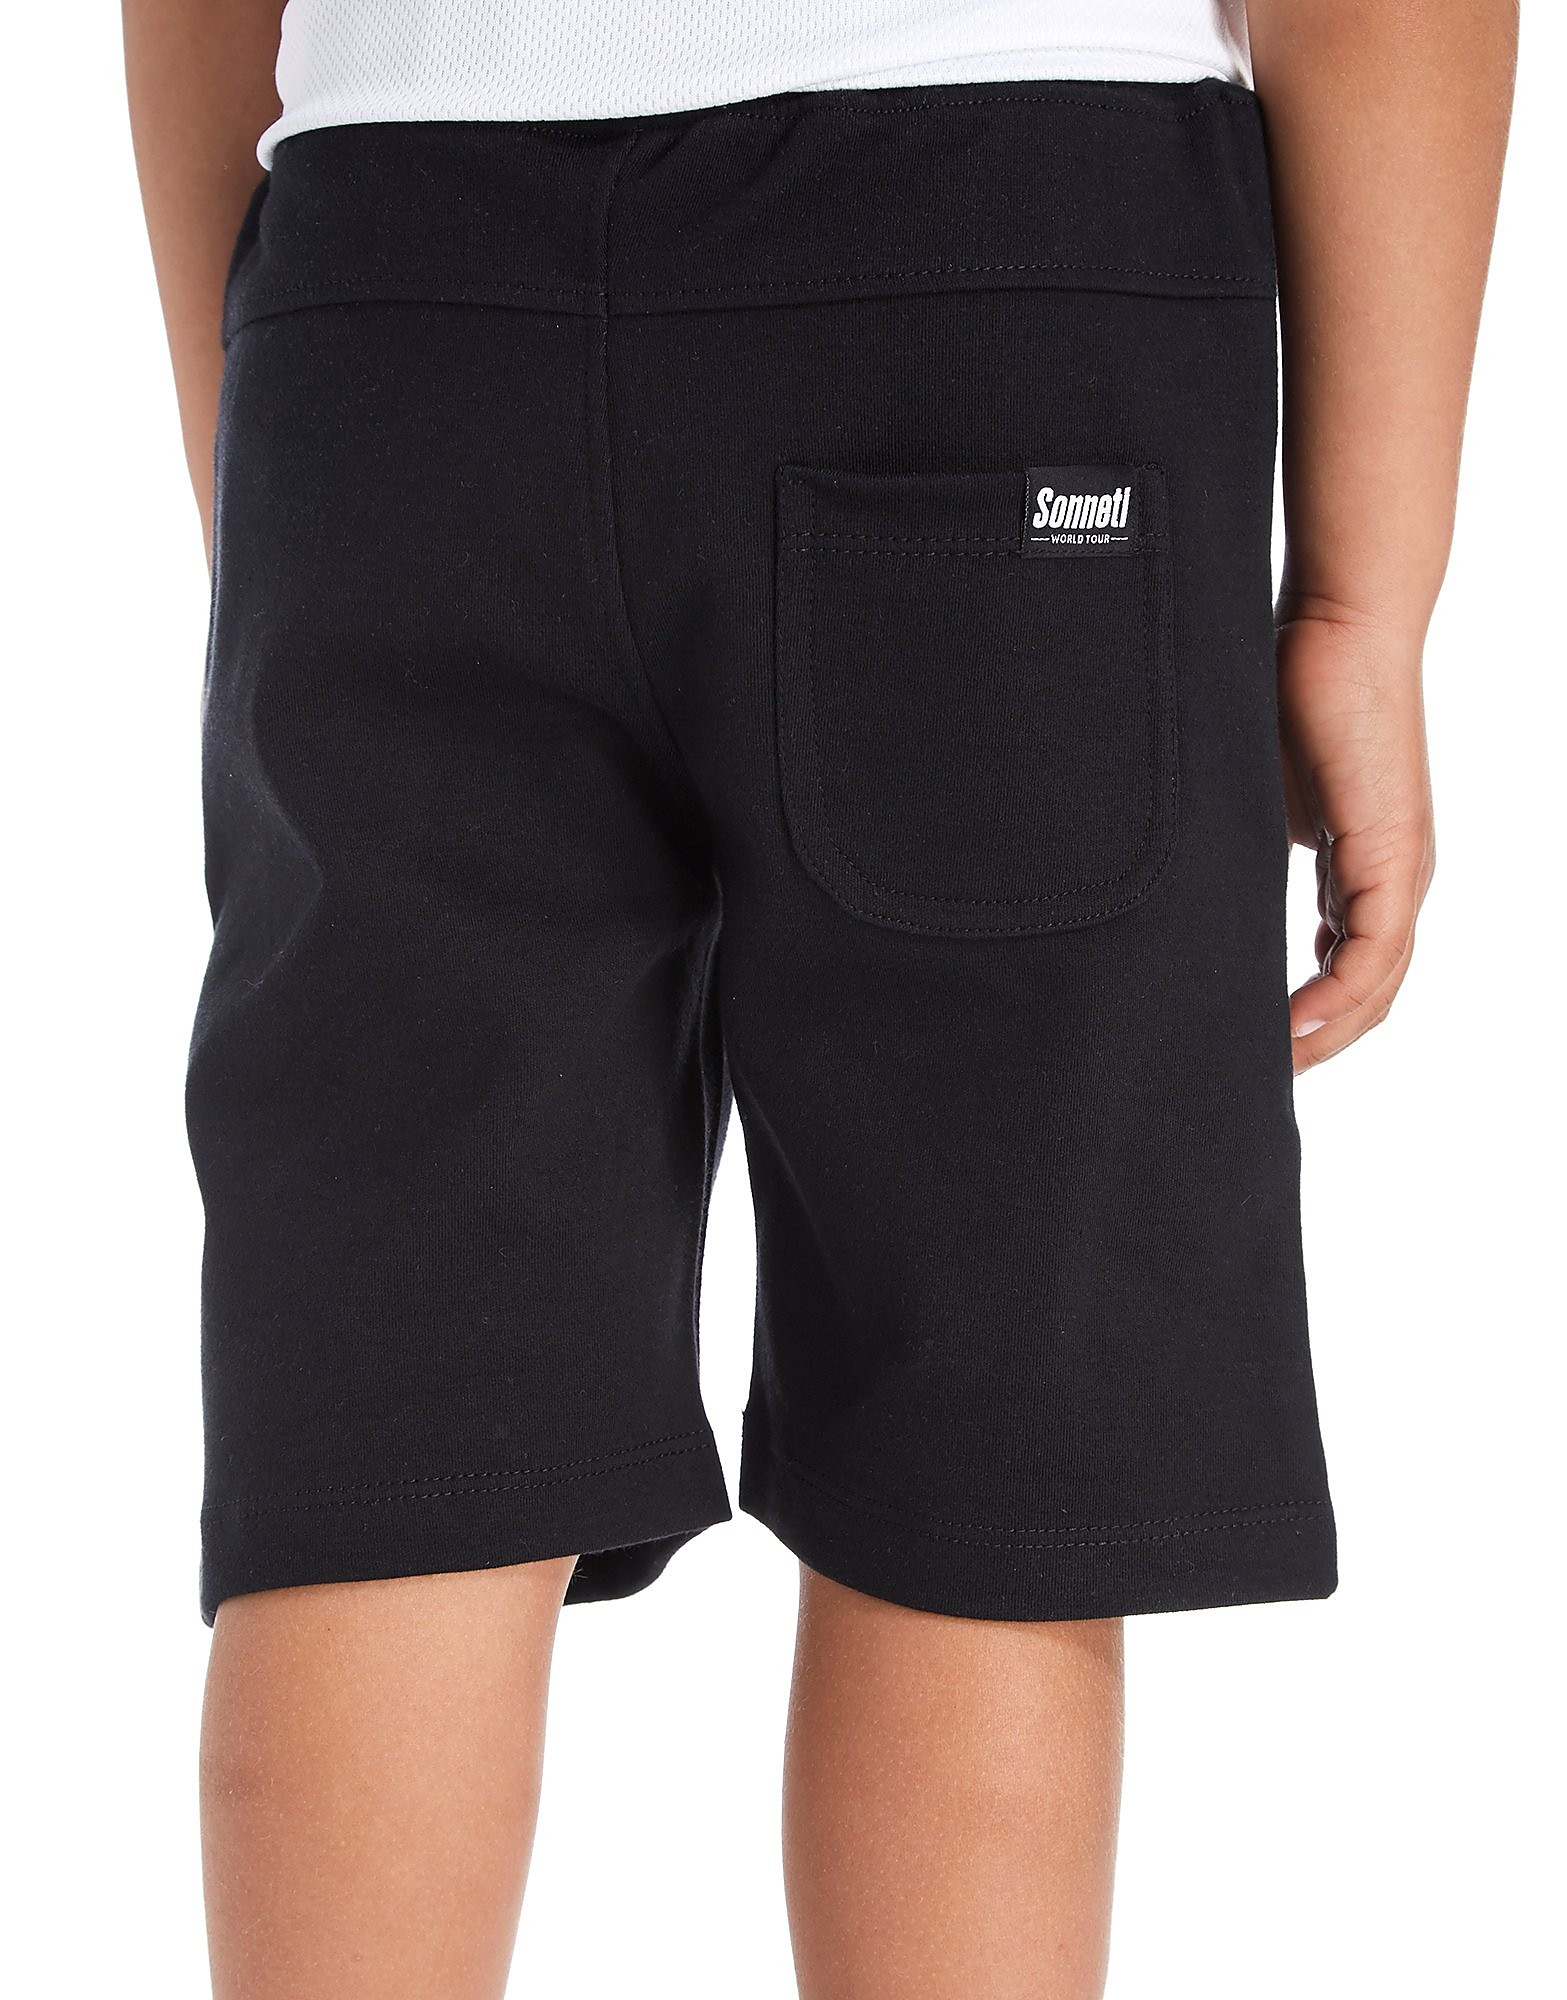 Sonneti Bound Shorts Children